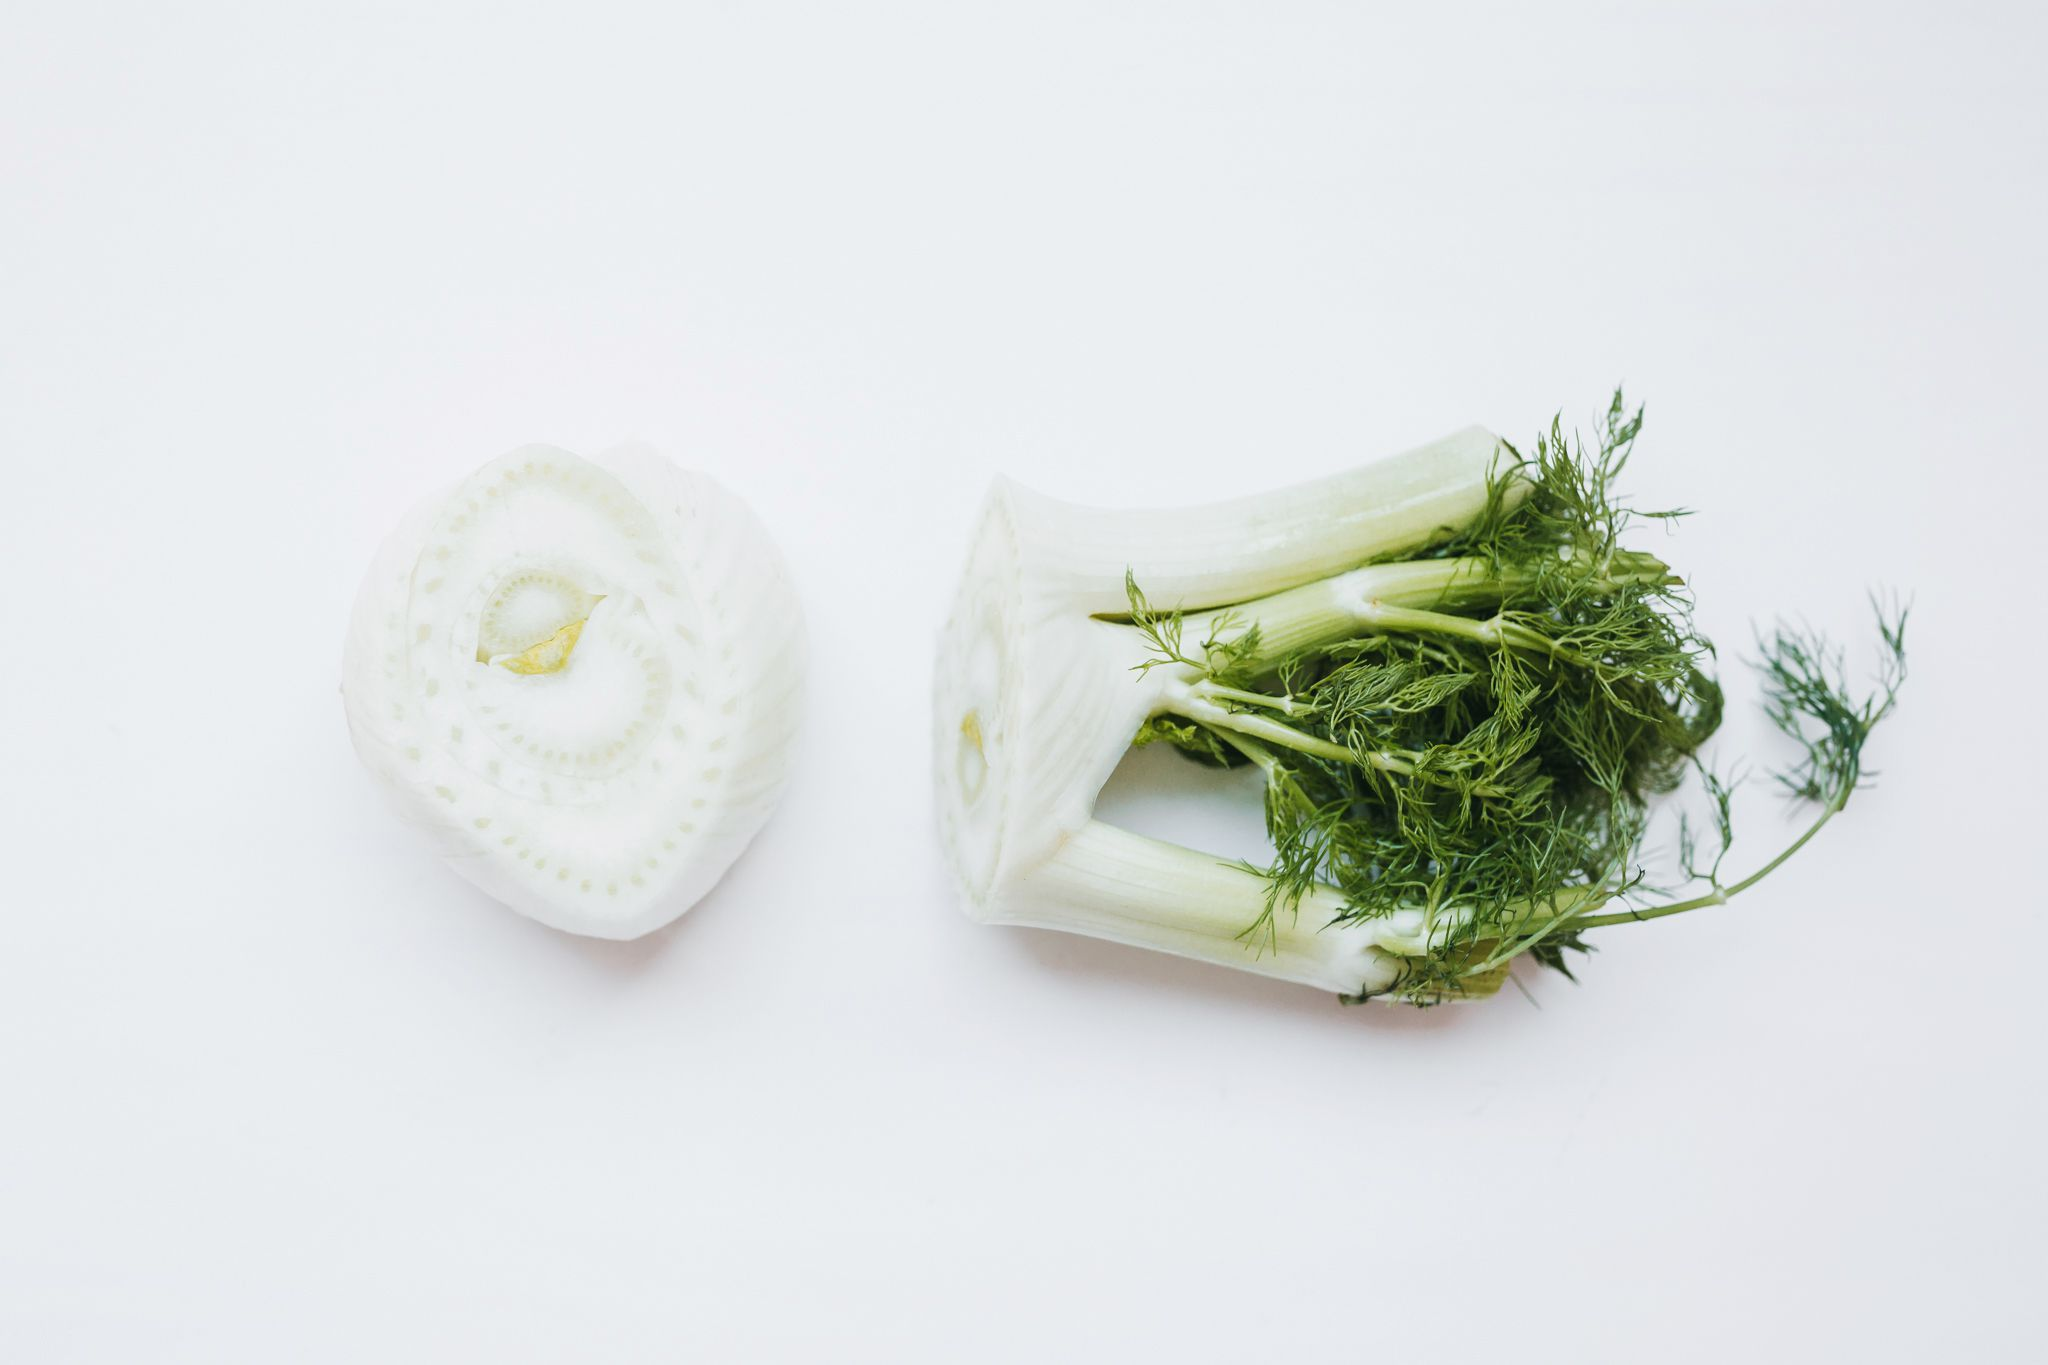 Discard root of fennel